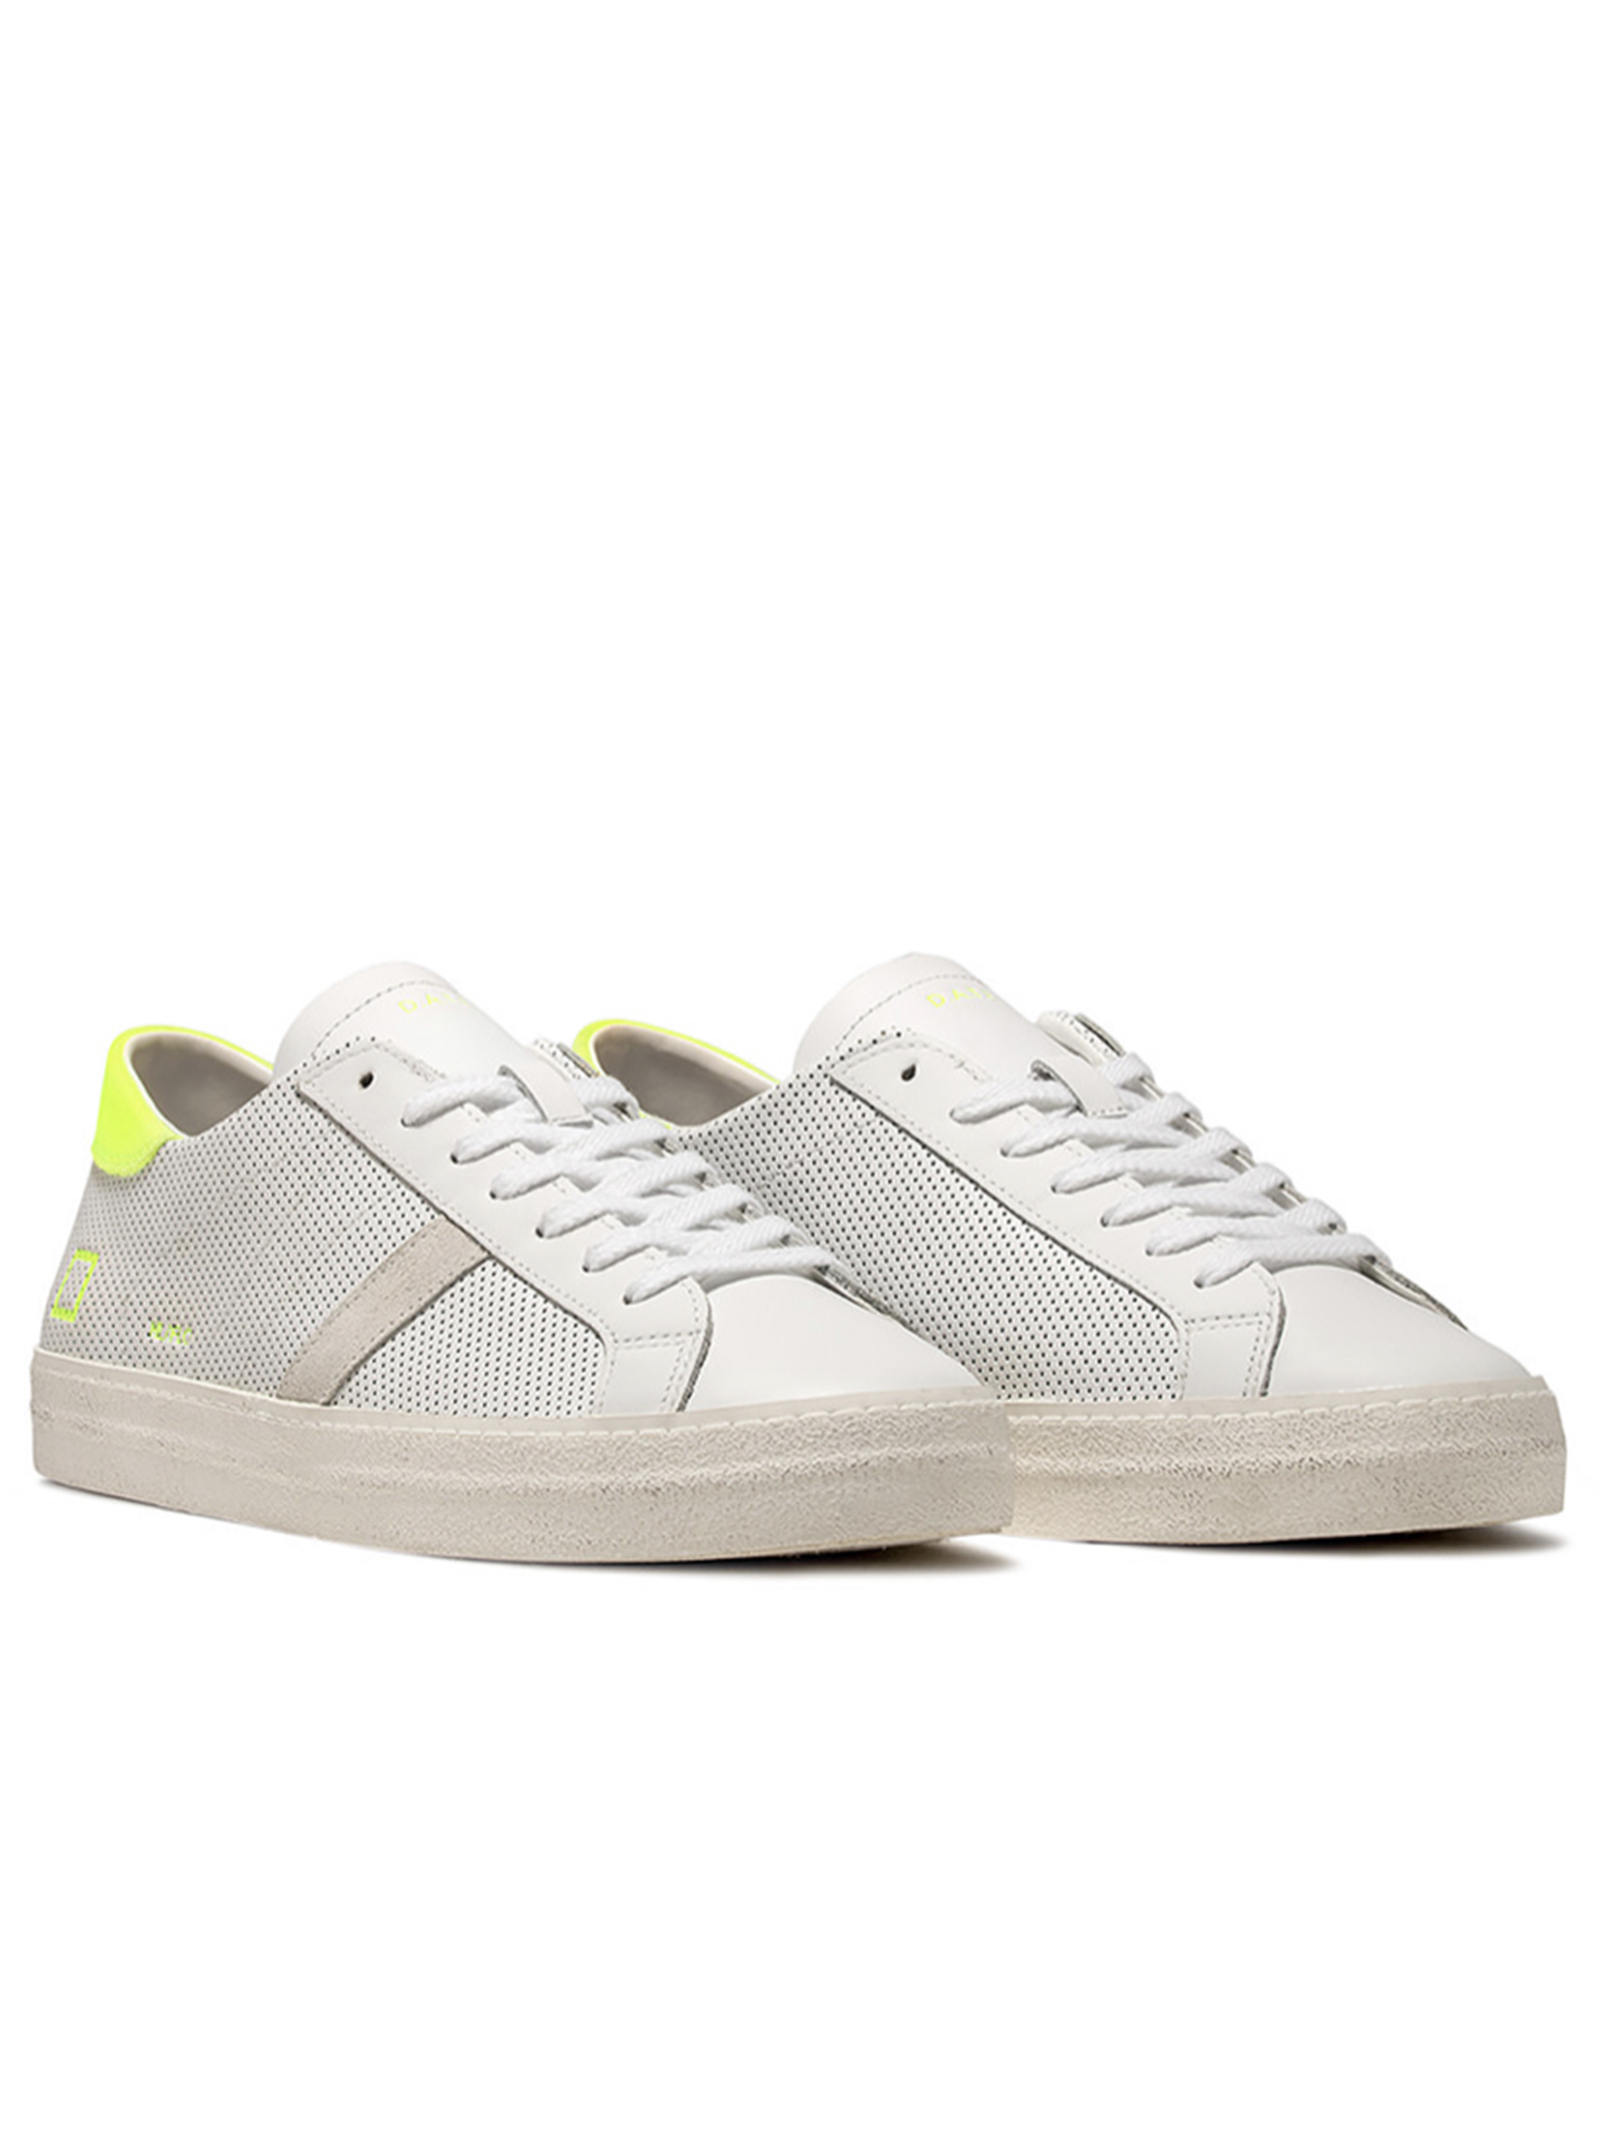 HILL LOW FLUO PERFORATED WHITE-YELLOW D.A.T.E. | Scarpe | HILL LOW FLUO PERF.WHITE YELLOWWY